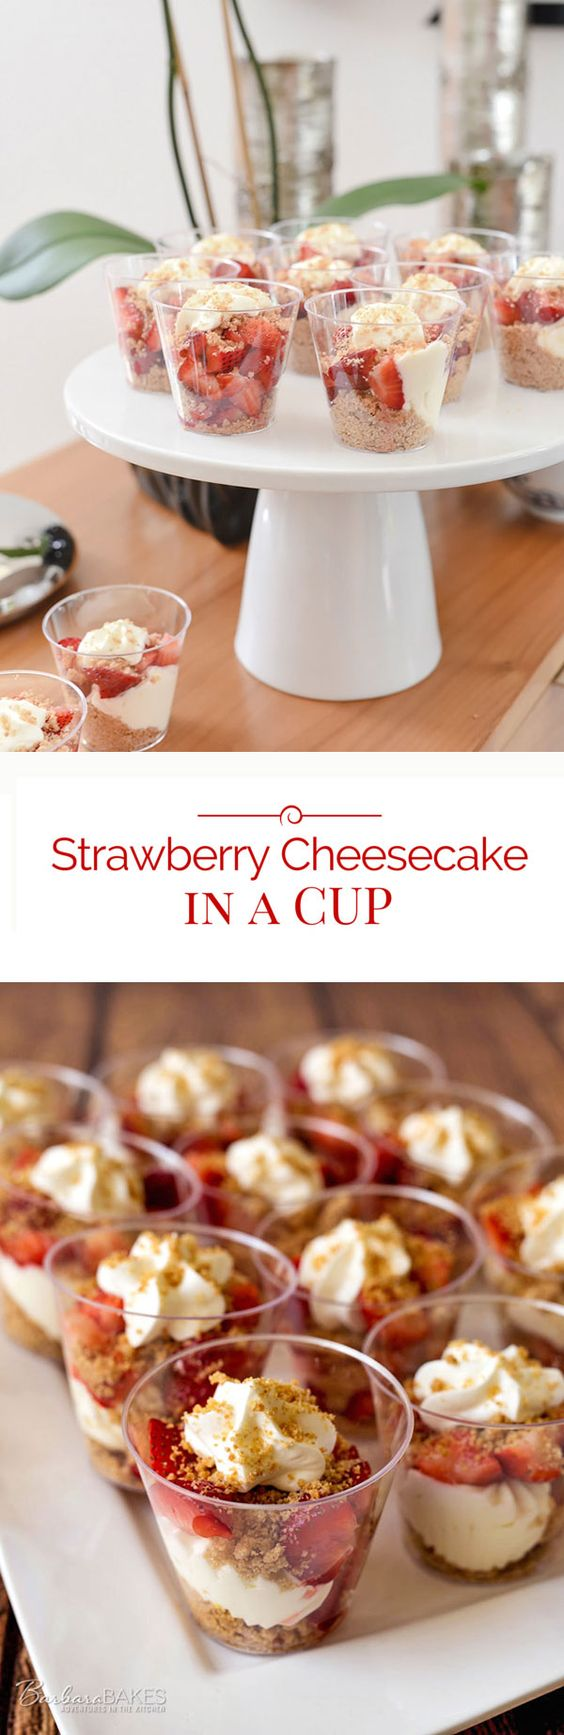 Strawberry Cheesecake in a Jar - a light, refreshing, easy-to-make dessert.